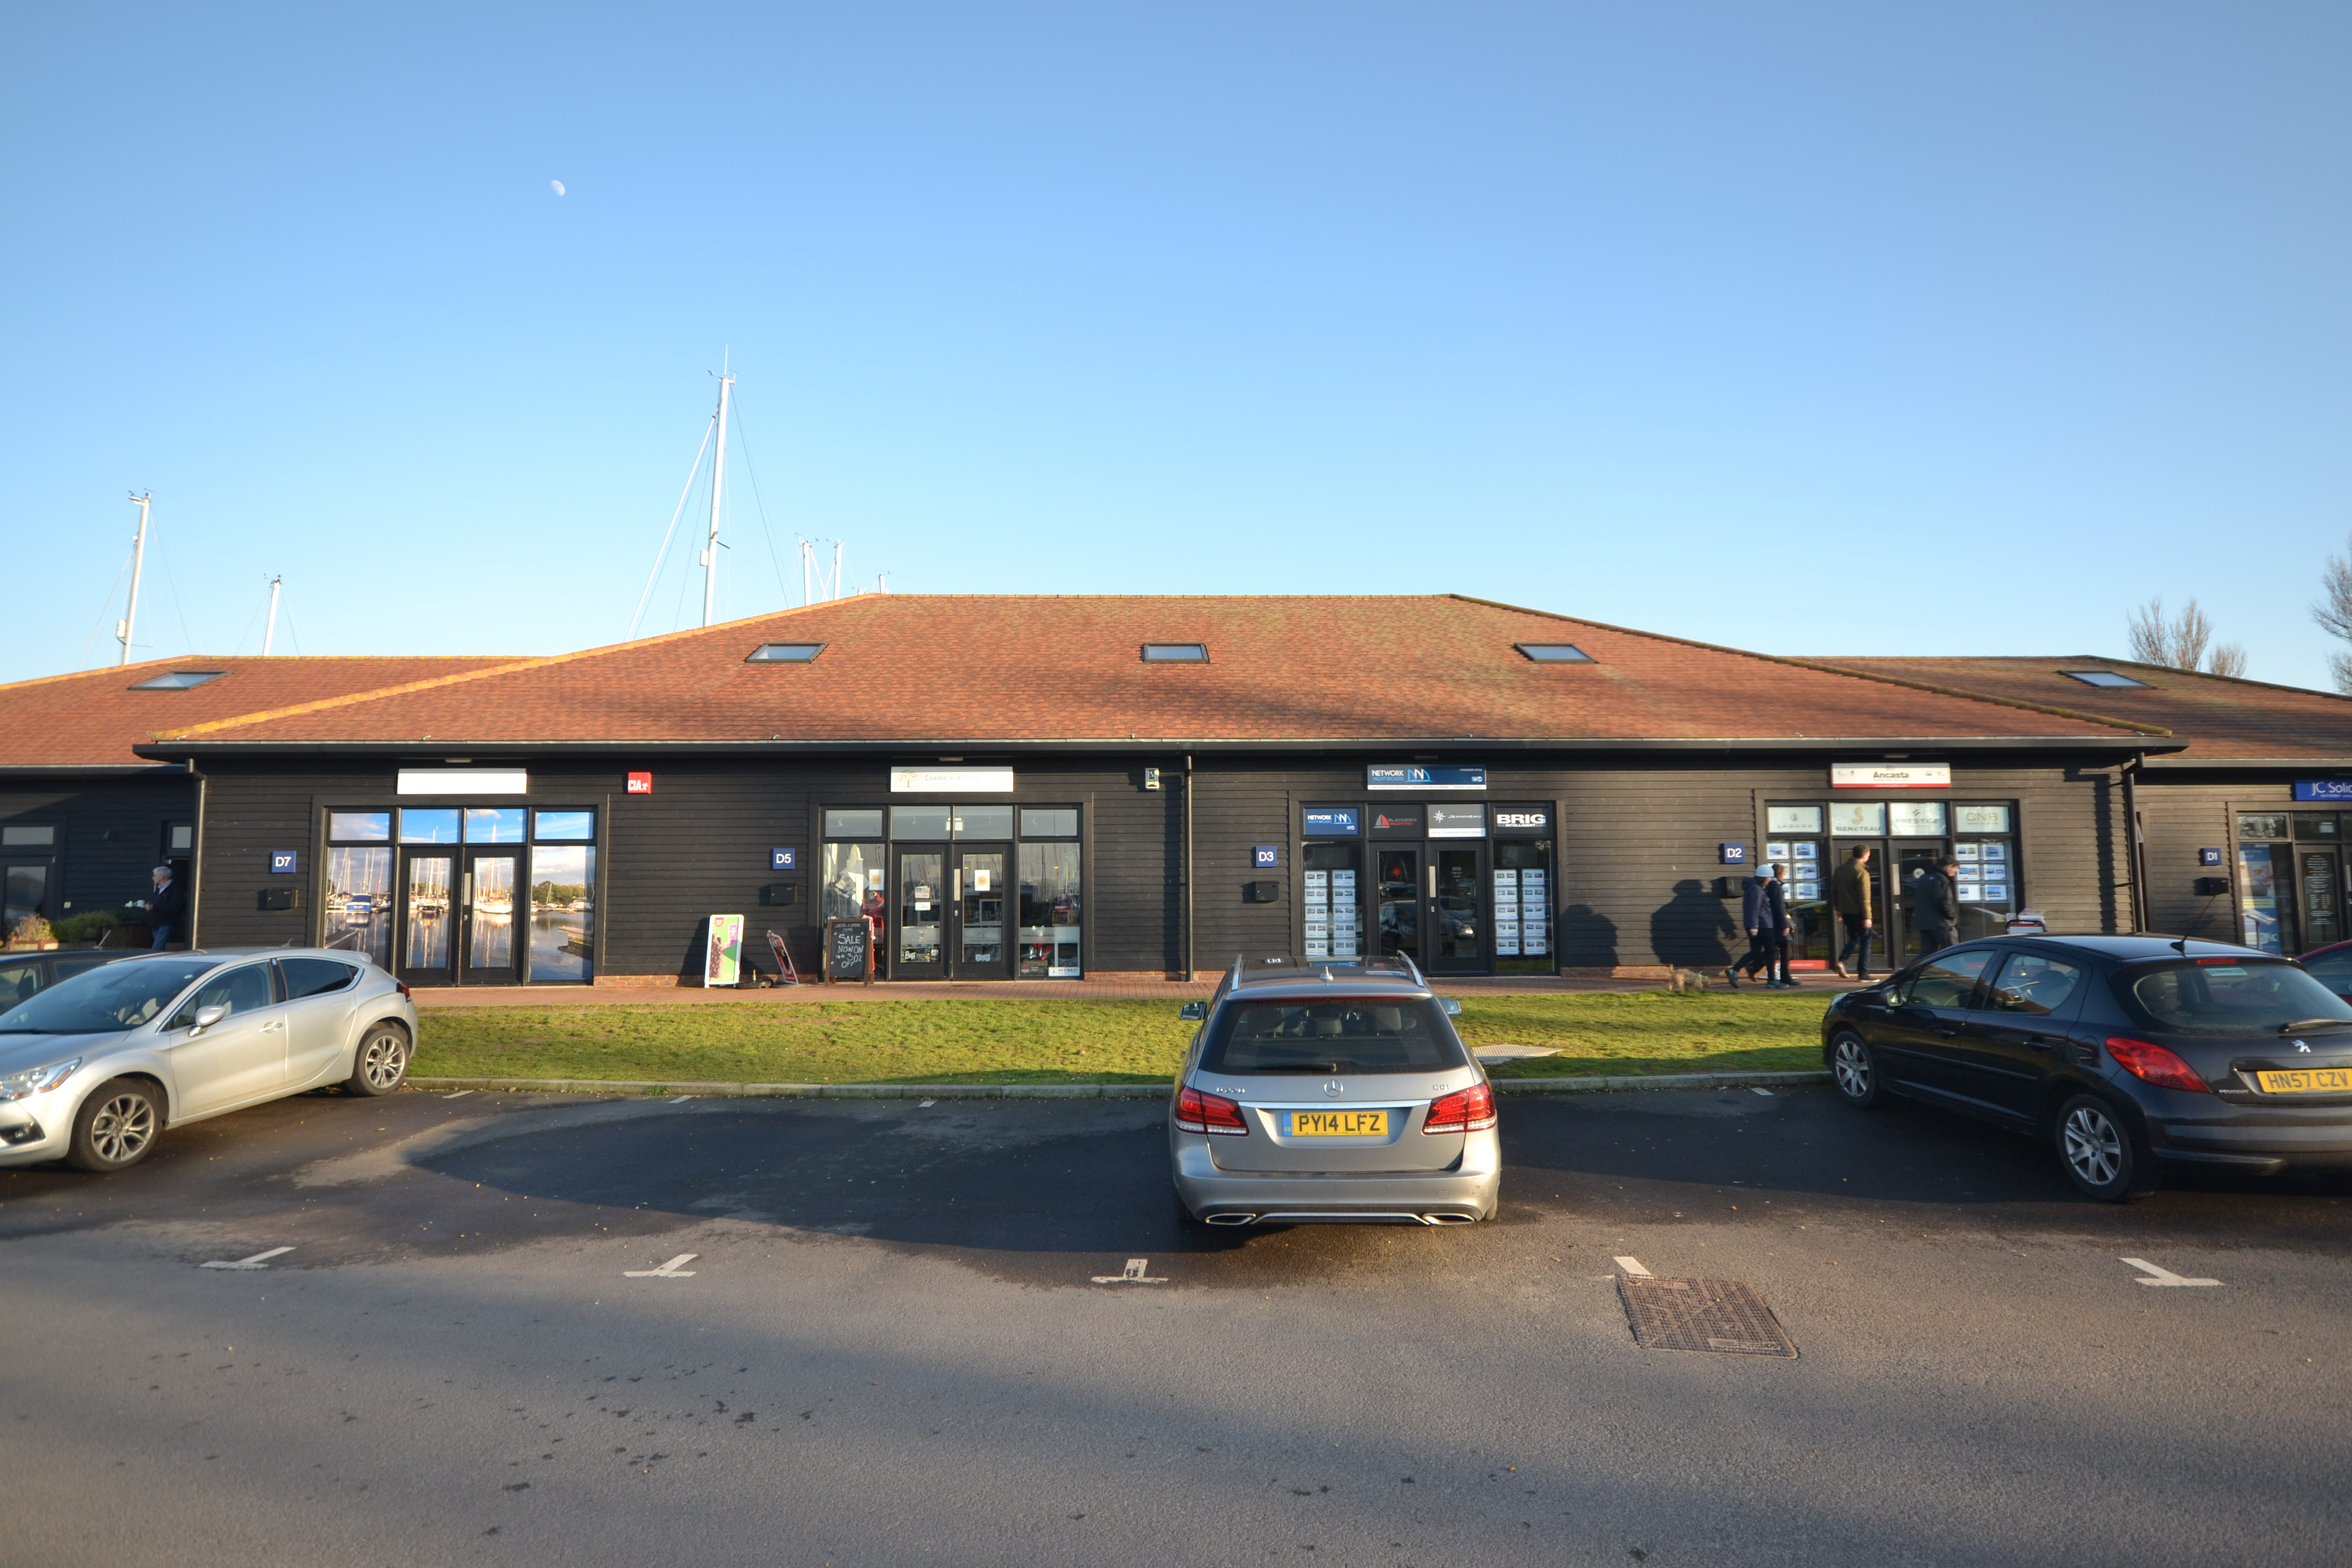 Office for rent in Chichester. From Henry Adams Commercial